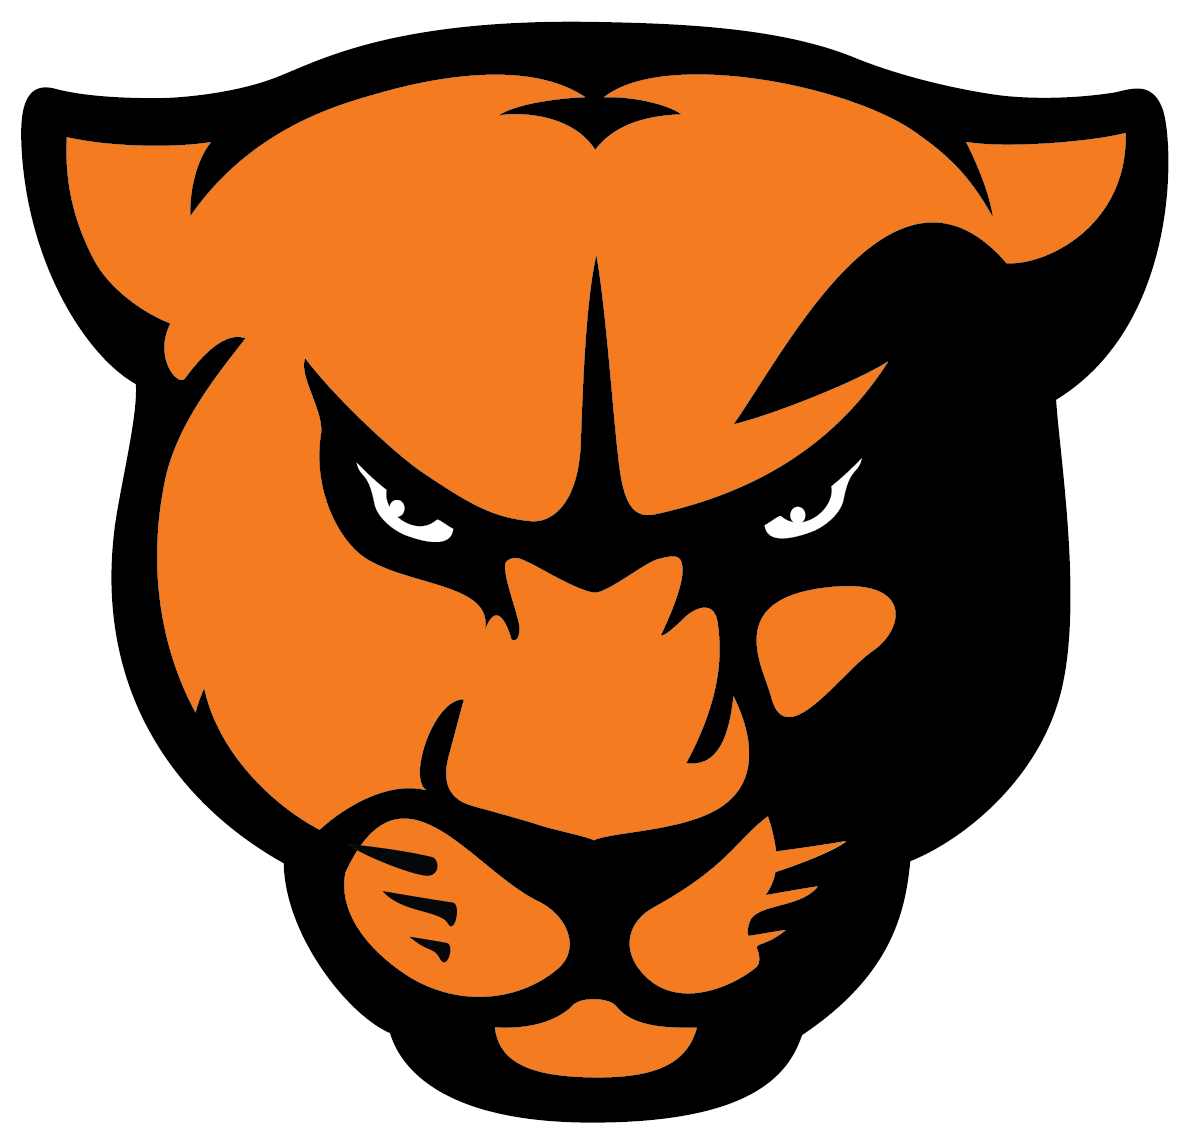 Greenville University Athletics